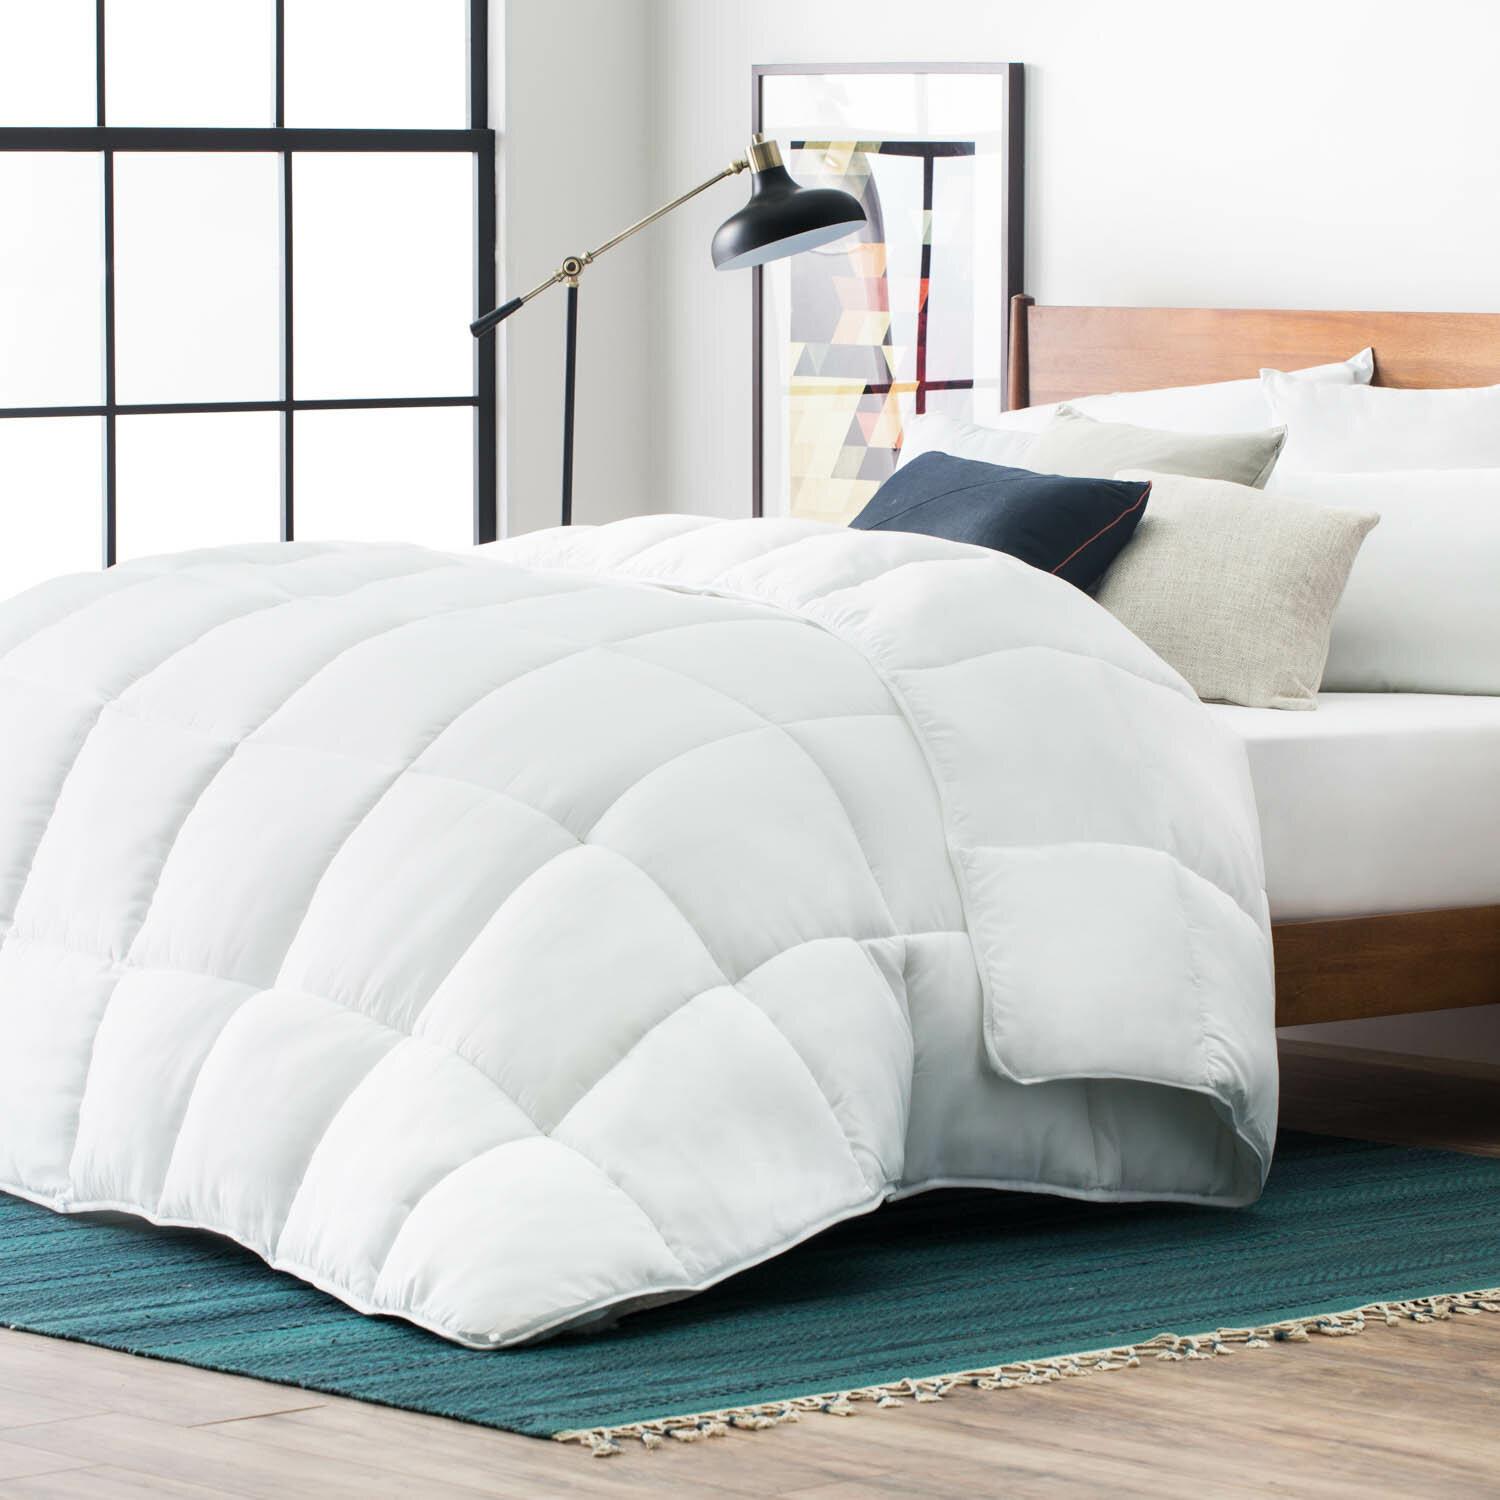 California King Down Comforters Duvet Inserts You Ll Love Wayfair